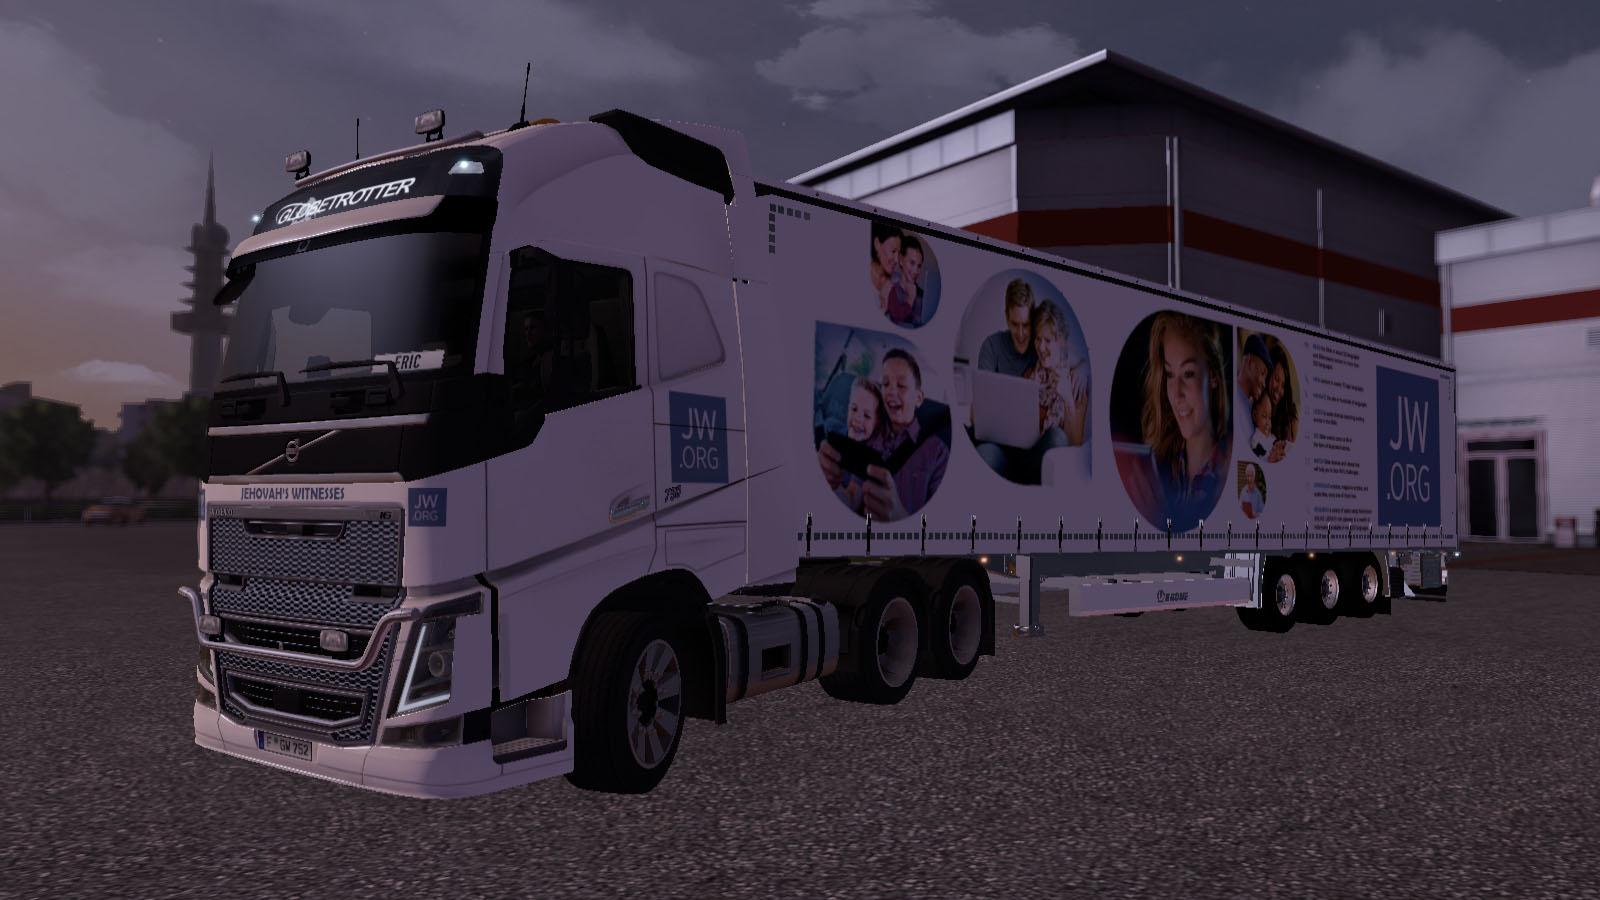 JW Org Skin For Volvo FH 2012 Truck Trailer Included